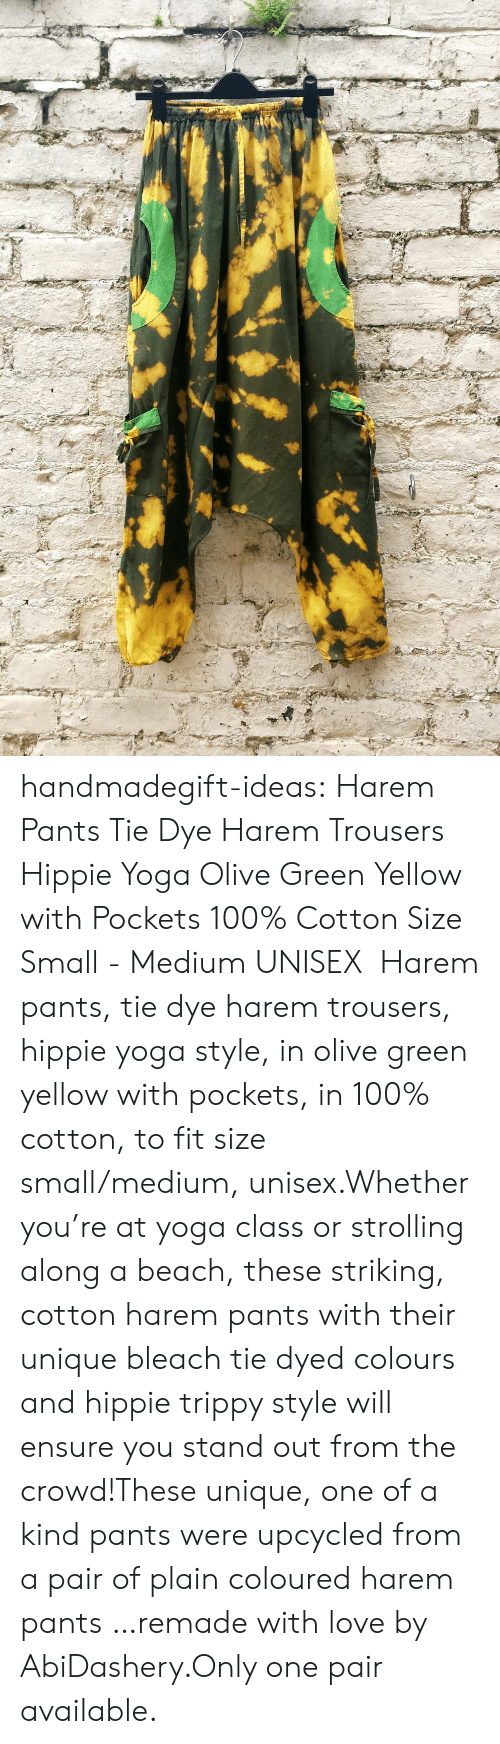 Anaconda, Love, and Tumblr: handmadegift-ideas:    Harem Pants Tie Dye Harem Trousers Hippie Yoga Olive Green  Yellow with Pockets 100% Cotton Size Small - Medium UNISEX   Harem pants, tie dye harem trousers, hippie yoga style, in olive green  yellow with pockets, in 100% cotton, to fit size small/medium, unisex.Whether you're at yoga class or strolling along a beach, these striking, cotton harem pants with their unique bleach tie dyed colours and hippie trippy style will ensure you stand out from the crowd!These unique, one of a kind pants were upcycled from a pair of plain coloured harem pants …remade with love by AbiDashery.Only one pair available.